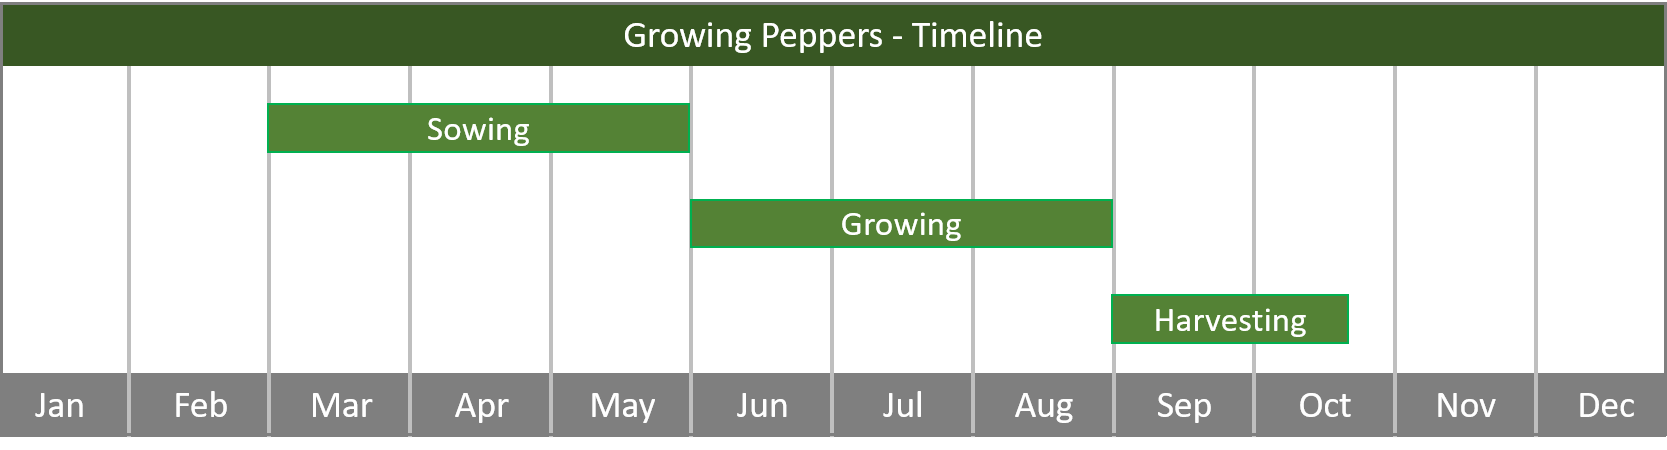 how to grow peppers from seed to harvest - timeline